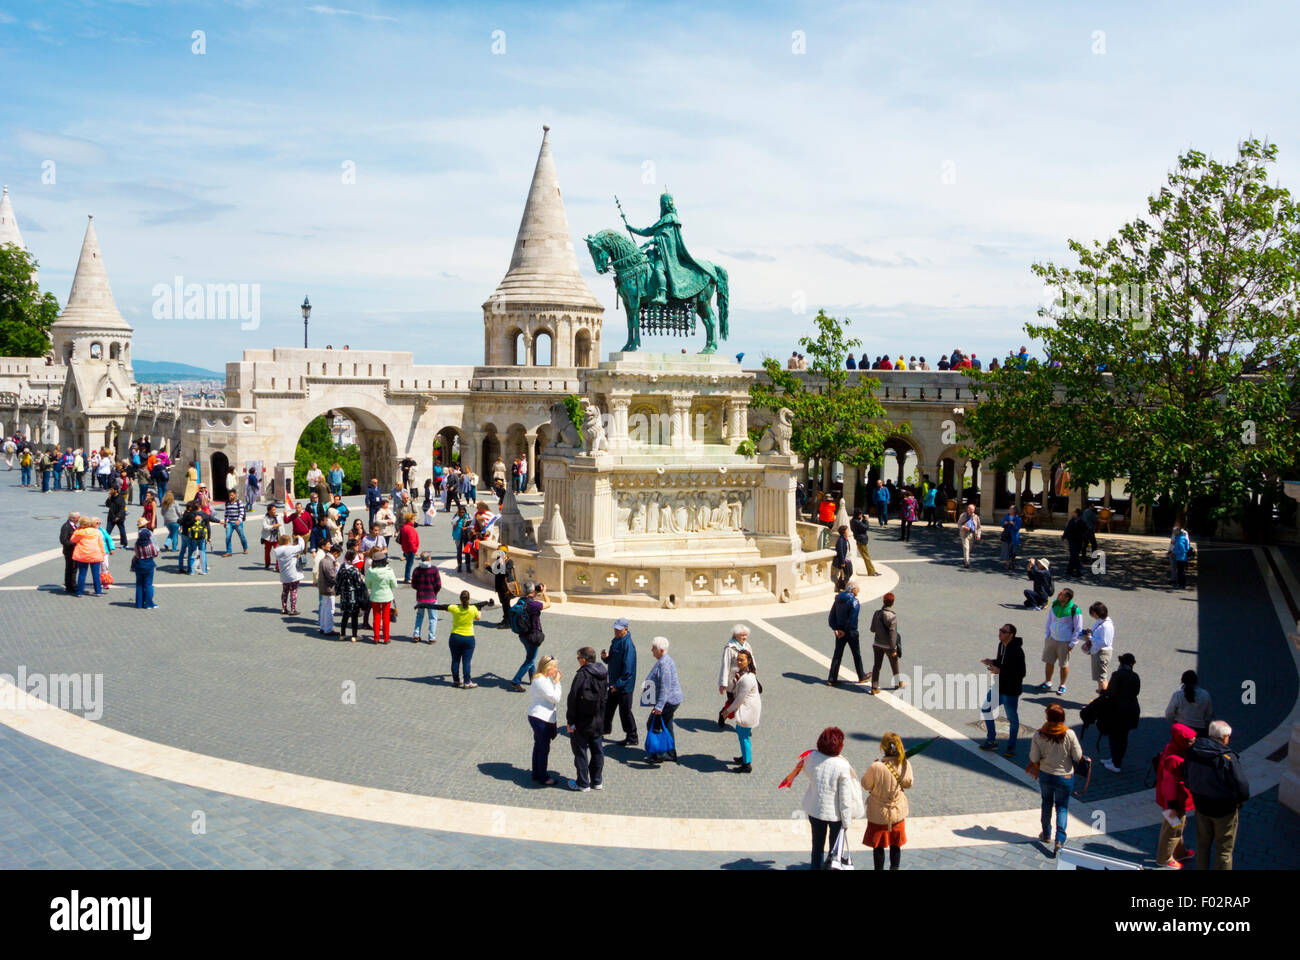 Szentharomsag ter, in front of Fisherman's bastion, Castle district, Buda, Budapest, Hungary, Europe - Stock Image